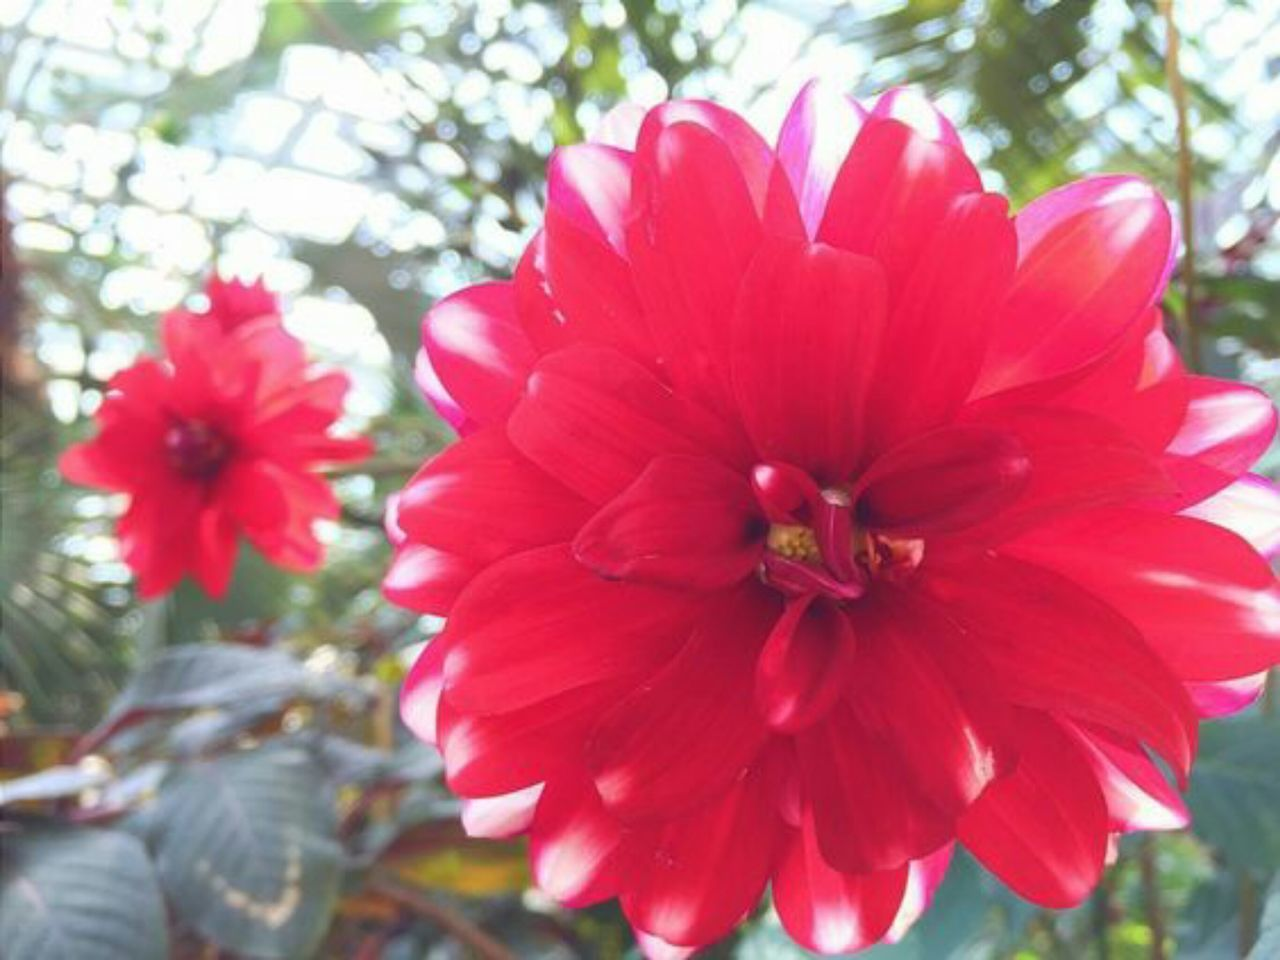 flower, petal, nature, beauty in nature, flower head, plant, day, growth, outdoors, fragility, no people, freshness, blossom, close-up, red, focus on foreground, tree, blooming, hibiscus